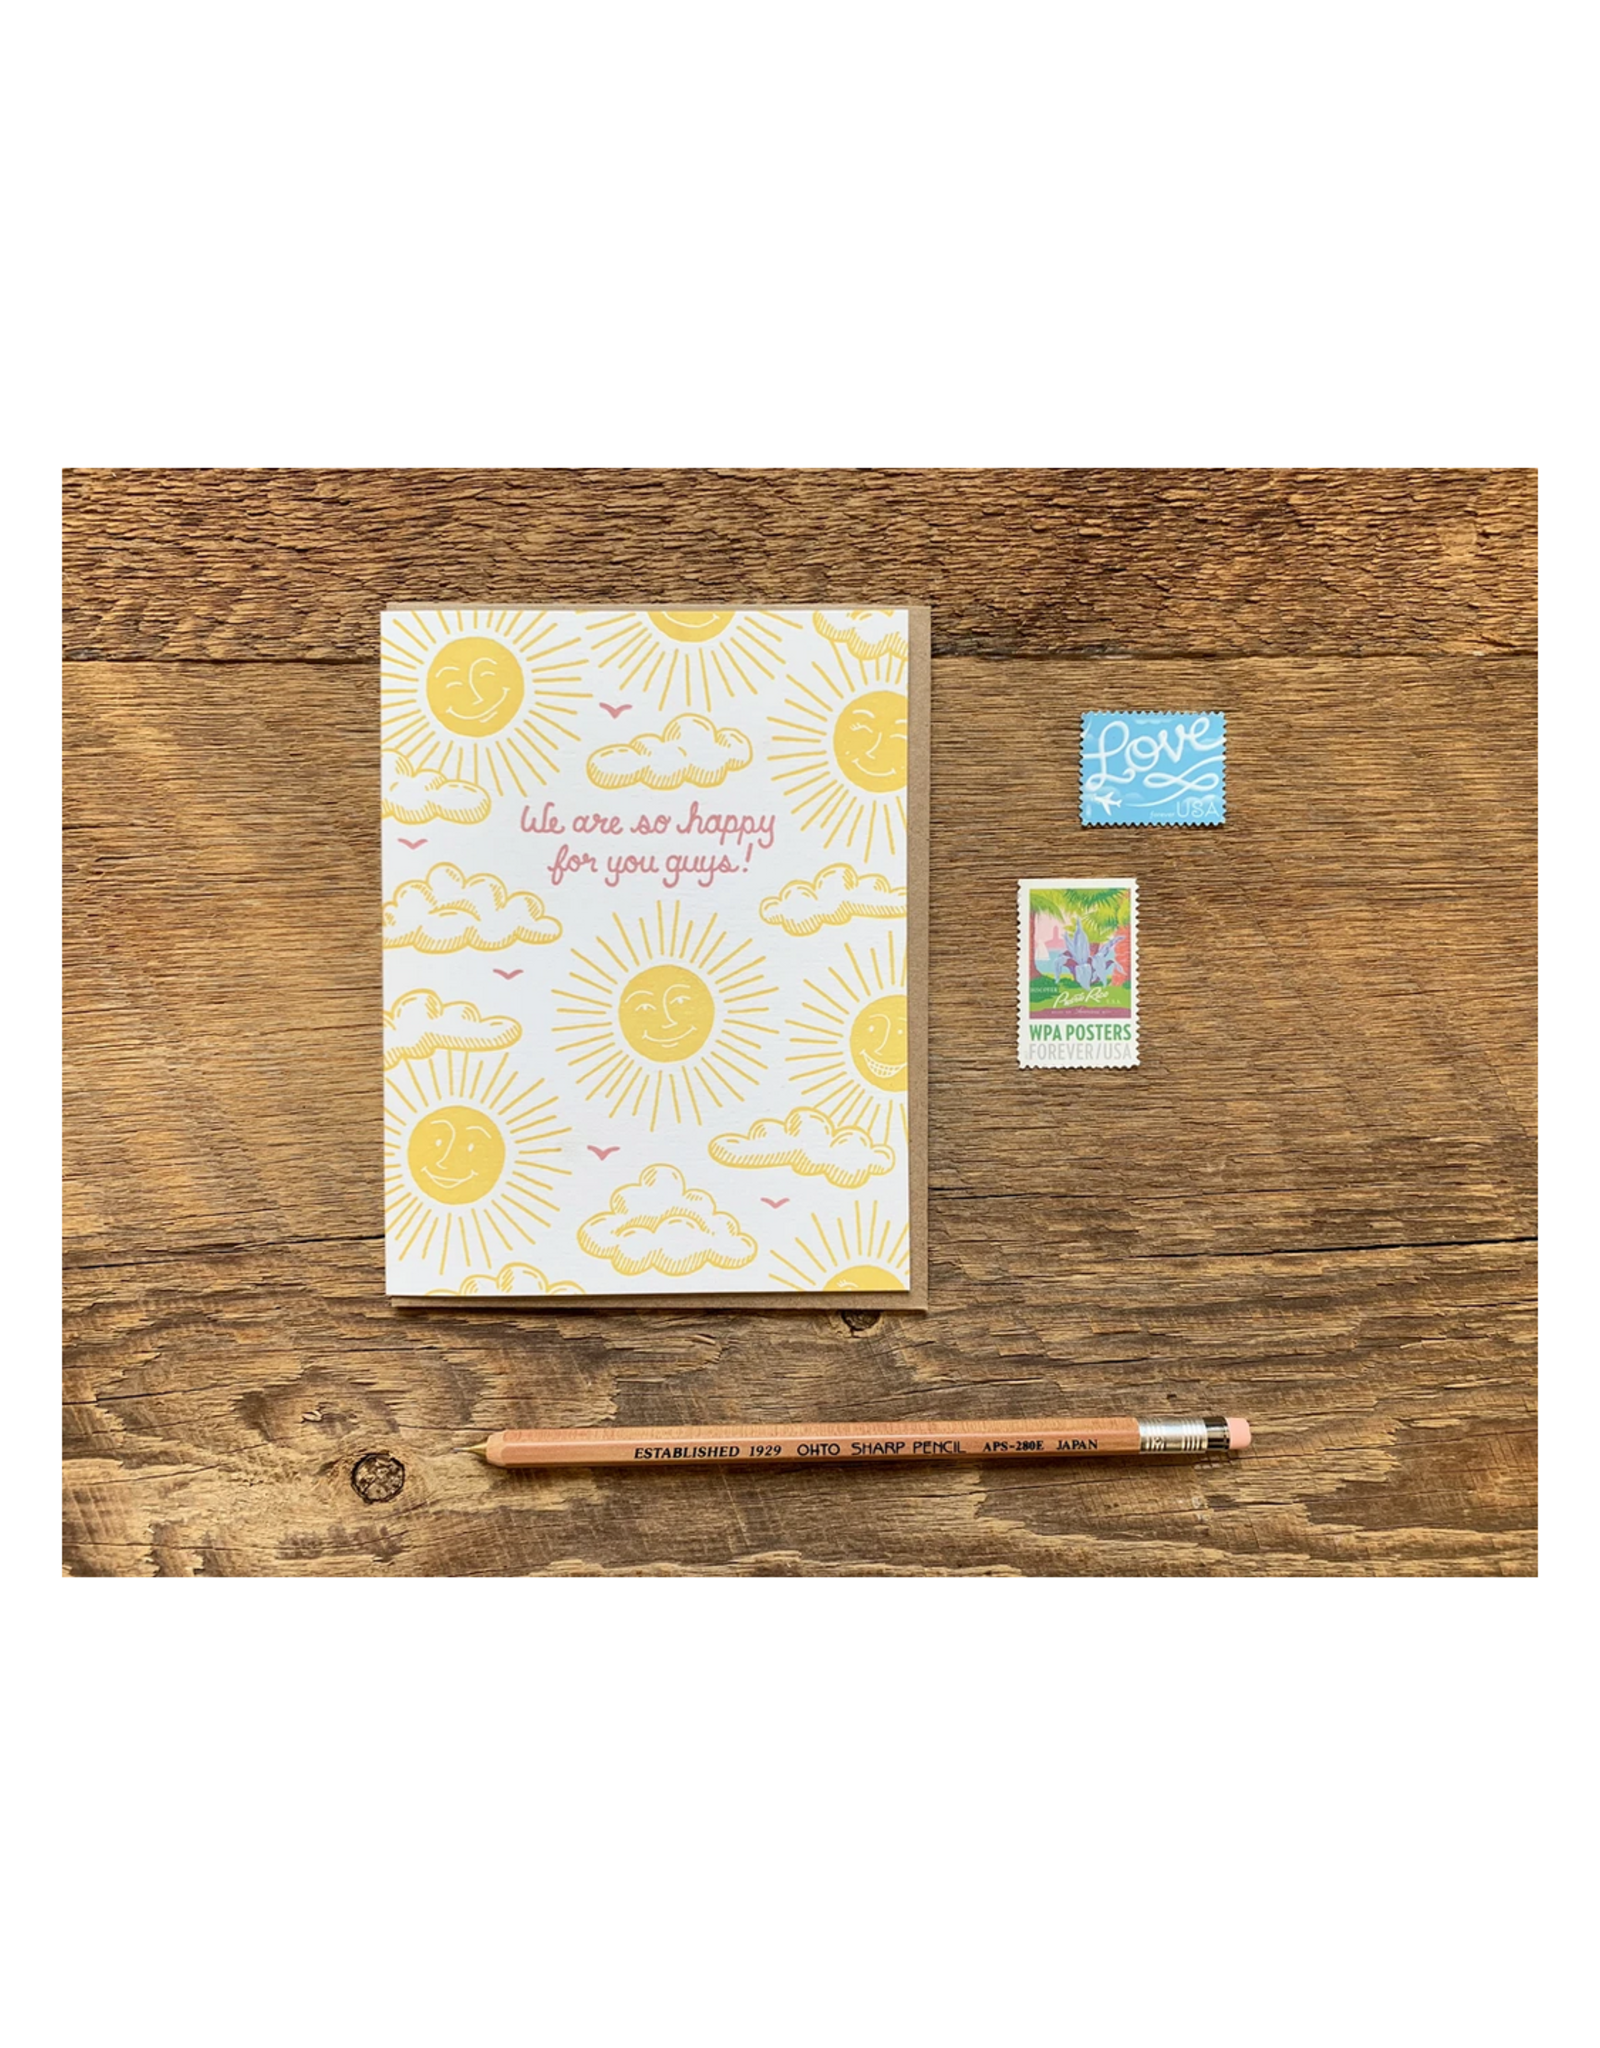 We Are So Happy For You Guys Greeting Card